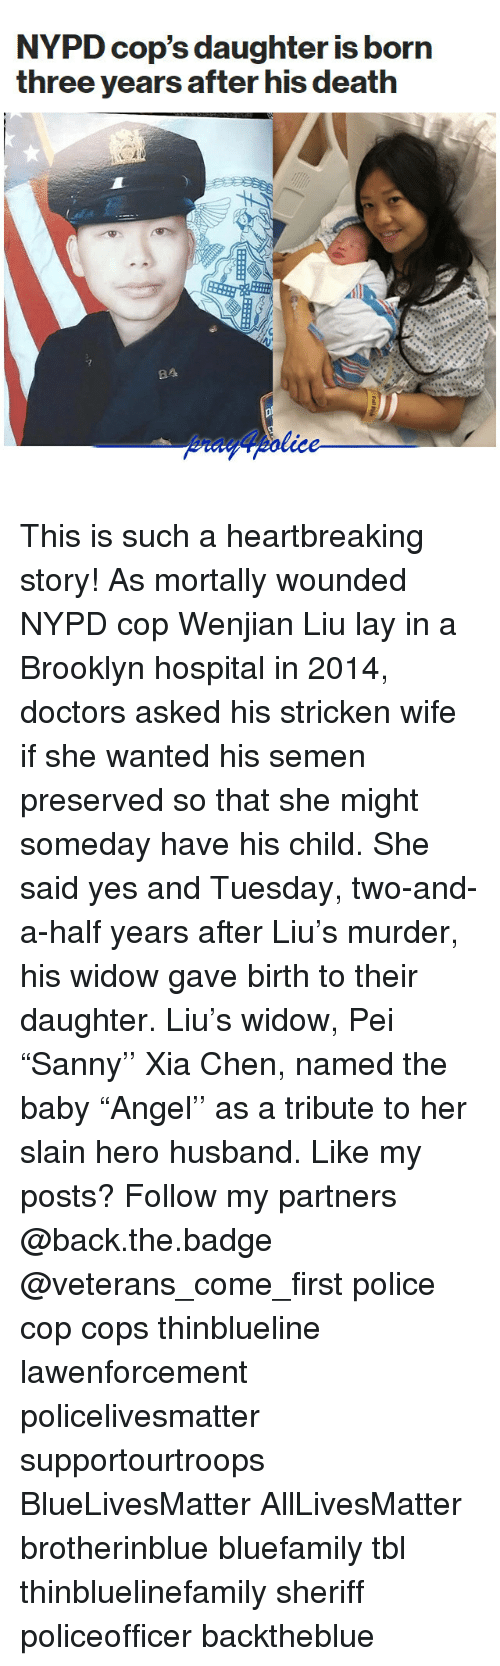 "Murderize: NYPD cop's daughter is born  three years after his death  84 This is such a heartbreaking story! As mortally wounded NYPD cop Wenjian Liu lay in a Brooklyn hospital in 2014, doctors asked his stricken wife if she wanted his semen preserved so that she might someday have his child. She said yes and Tuesday, two-and-a-half years after Liu's murder, his widow gave birth to their daughter. Liu's widow, Pei ""Sanny'' Xia Chen, named the baby ""Angel'' as a tribute to her slain hero husband. Like my posts? Follow my partners @back.the.badge @veterans_сome_first police cop cops thinblueline lawenforcement policelivesmatter supportourtroops BlueLivesMatter AllLivesMatter brotherinblue bluefamily tbl thinbluelinefamily sheriff policeofficer backtheblue"